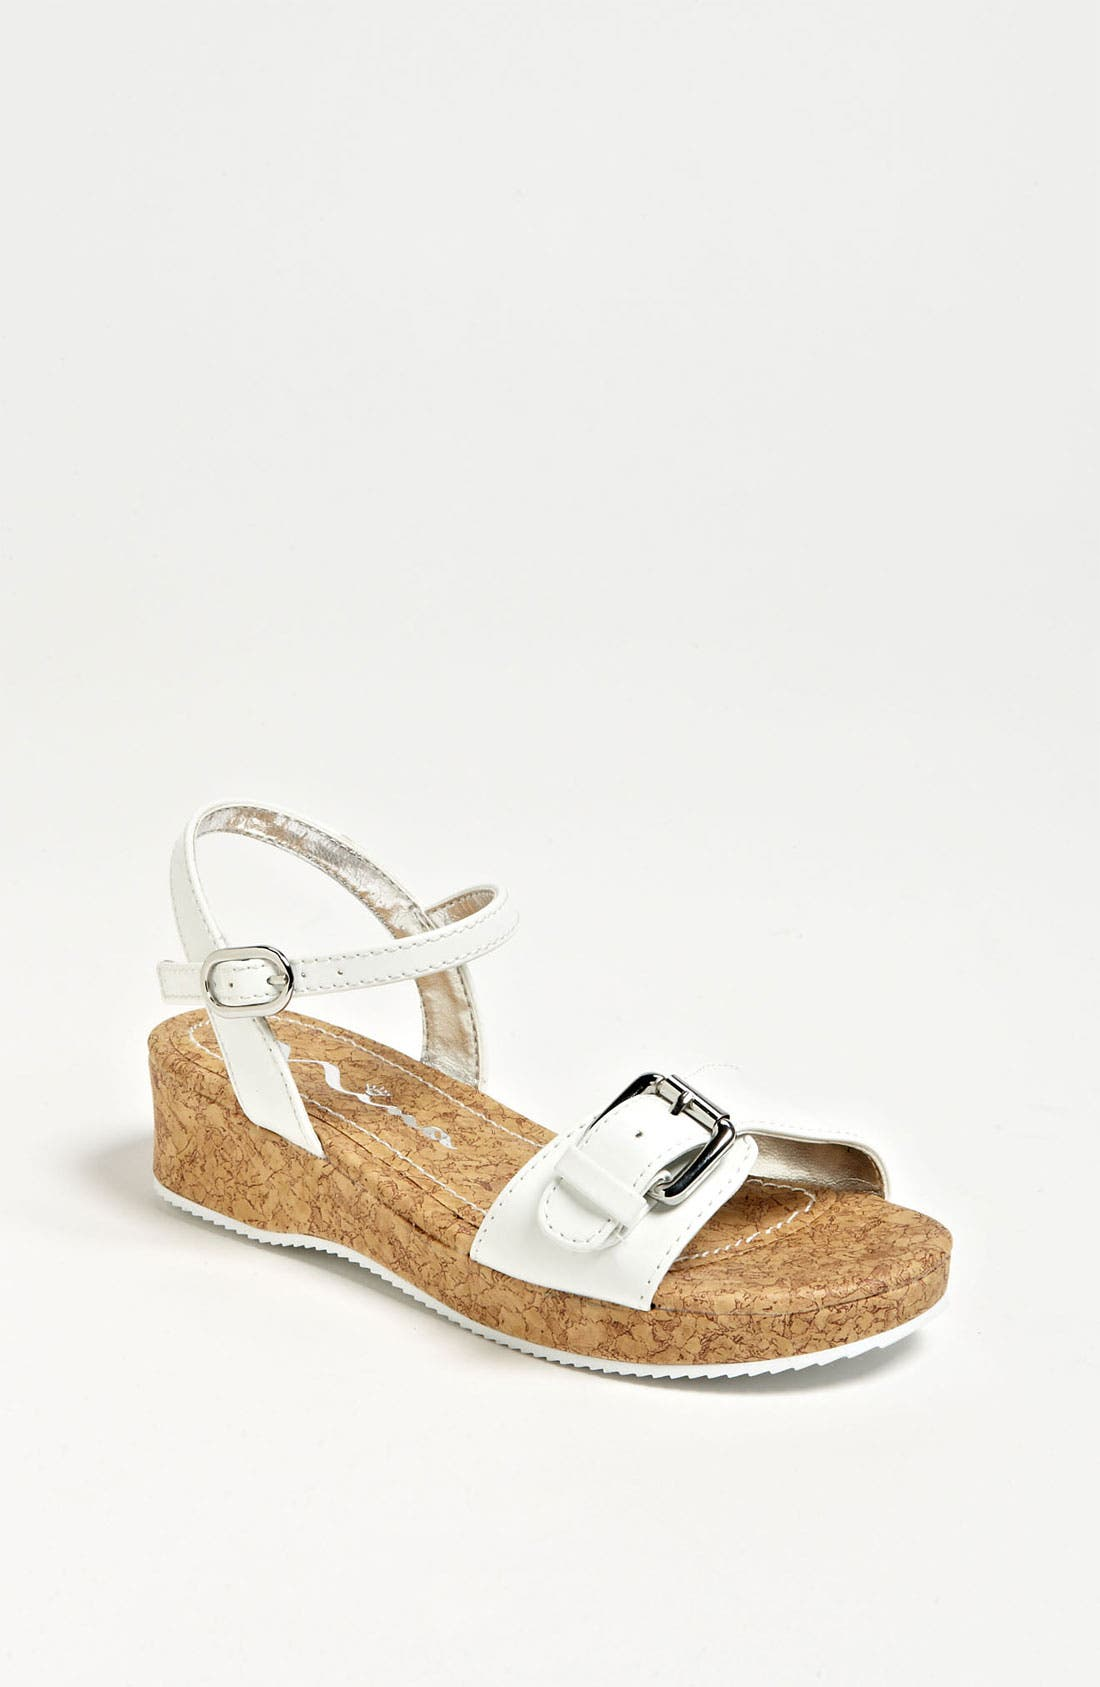 Alternate Image 1 Selected - Nina 'Yuki' Wedge Sandal (Toddler, Little Kid & Big Kid)